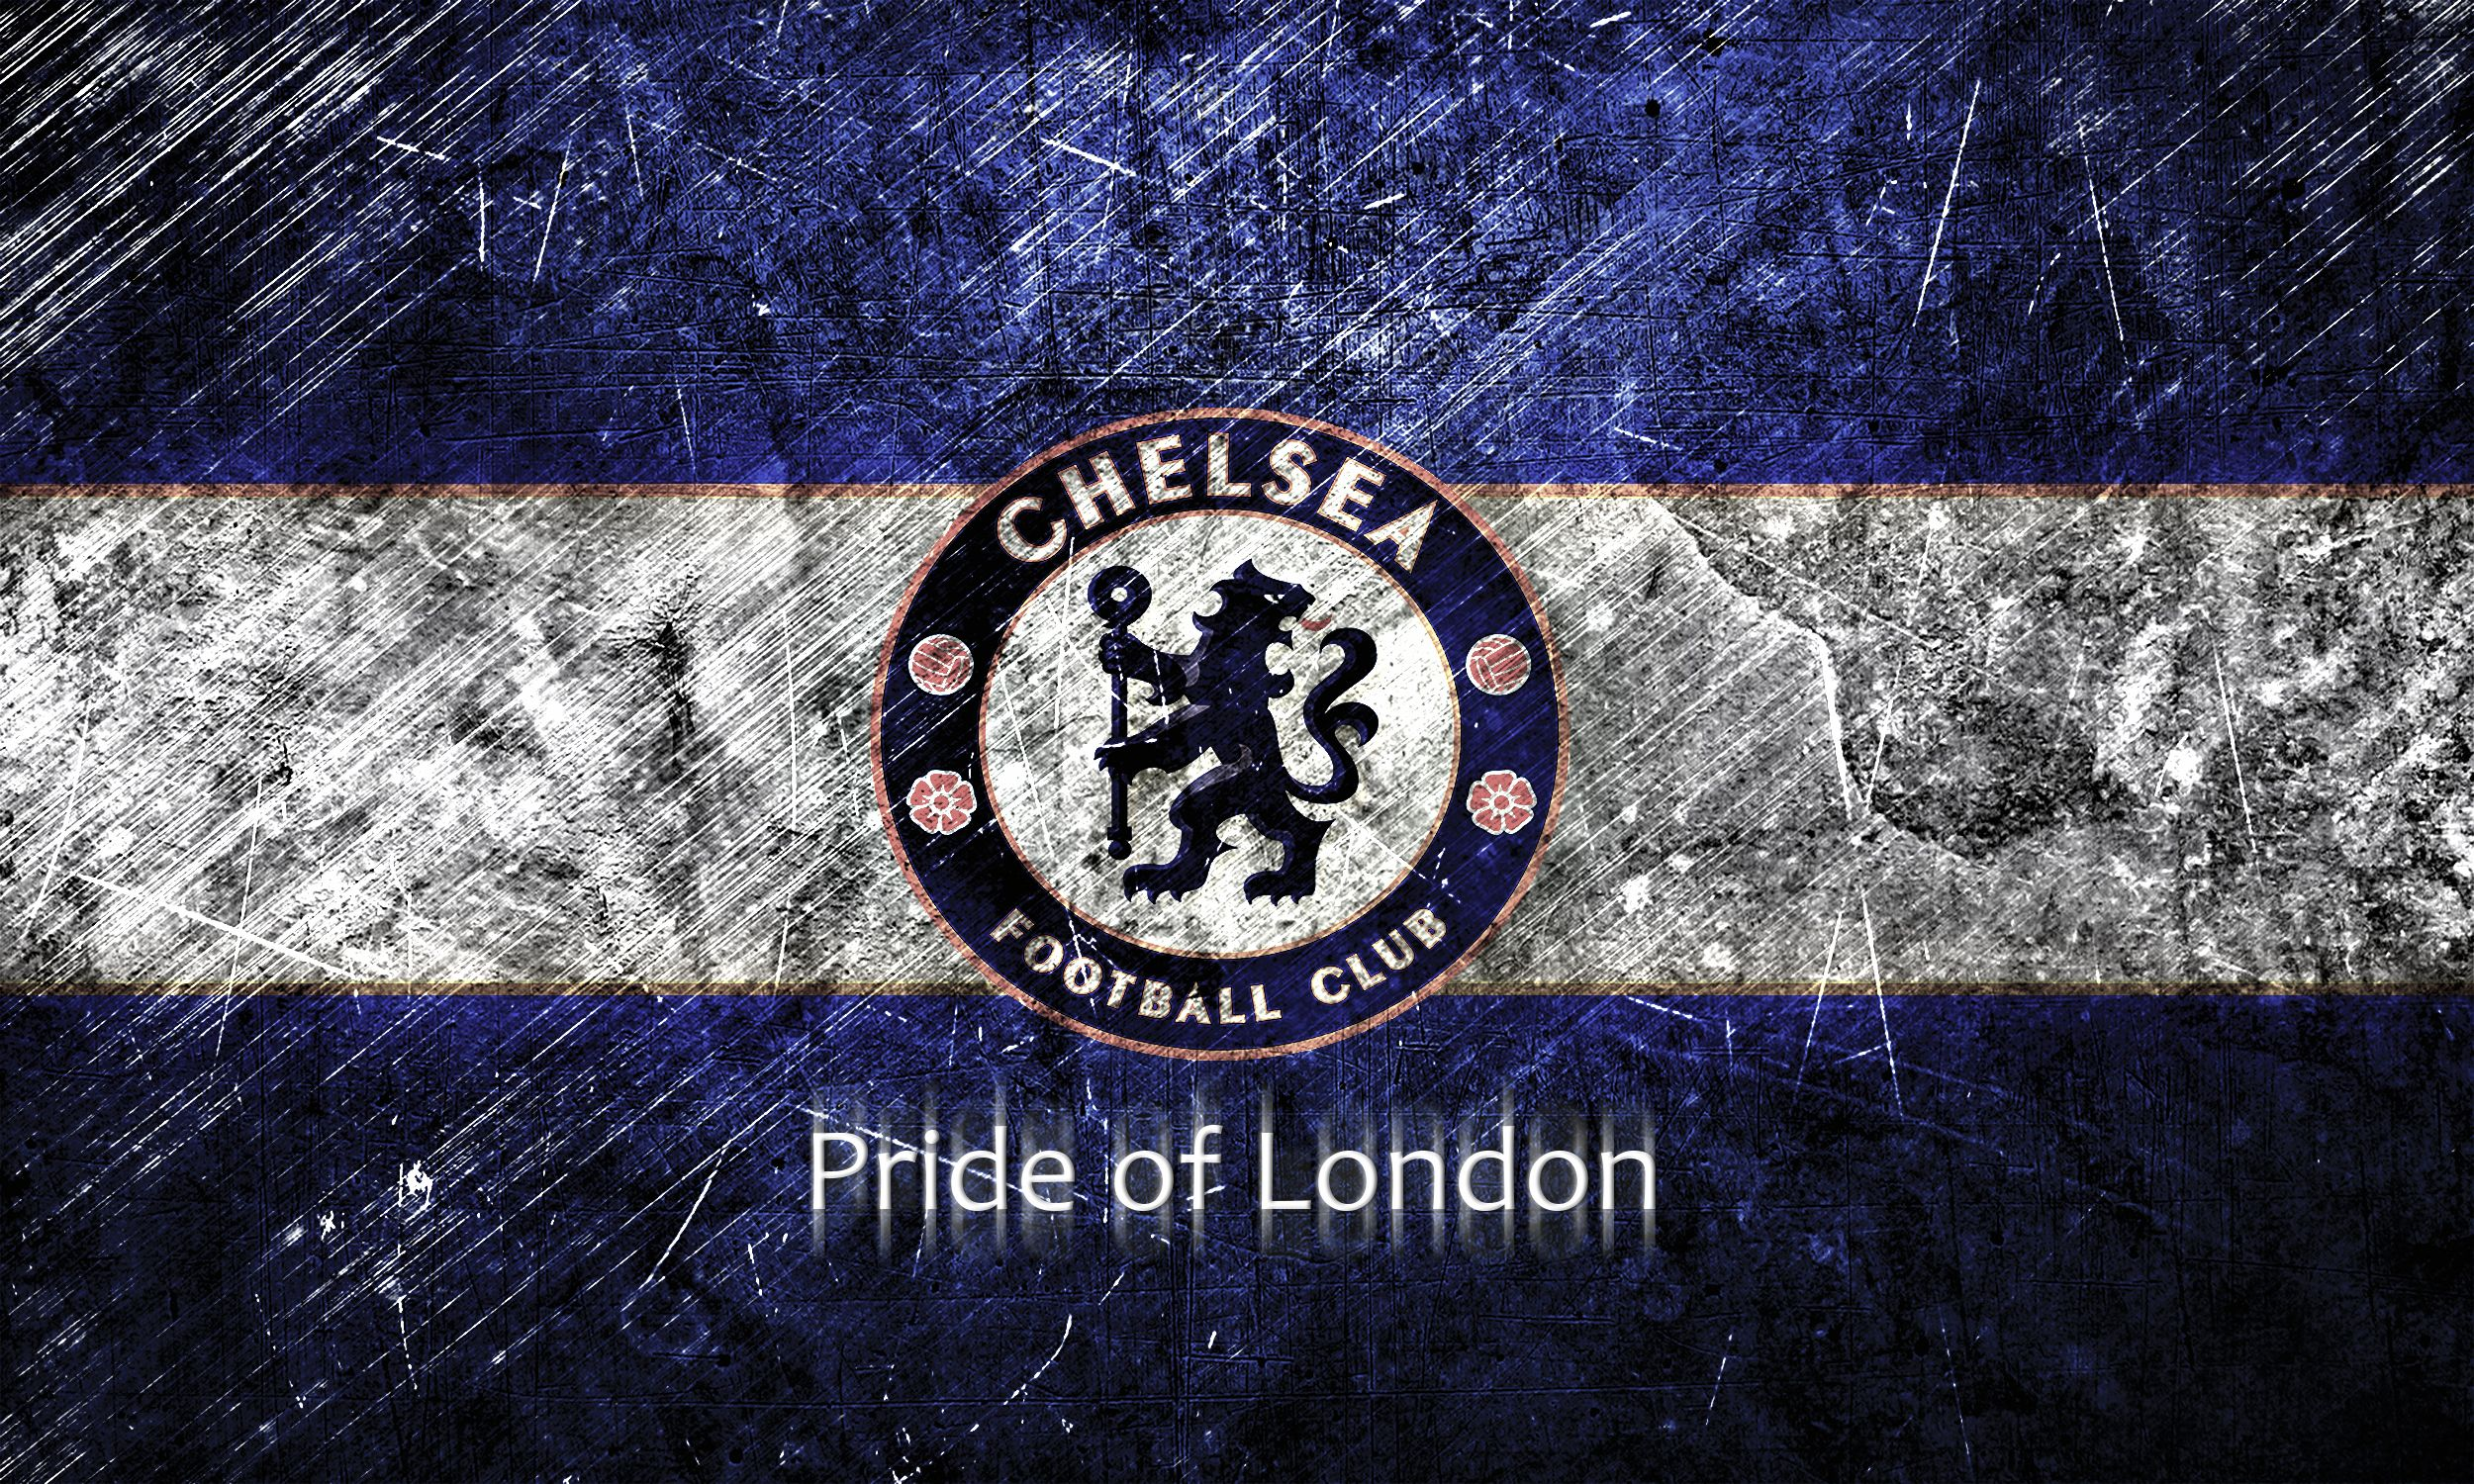 Chelsea Logo Football Club Wallpaper Background